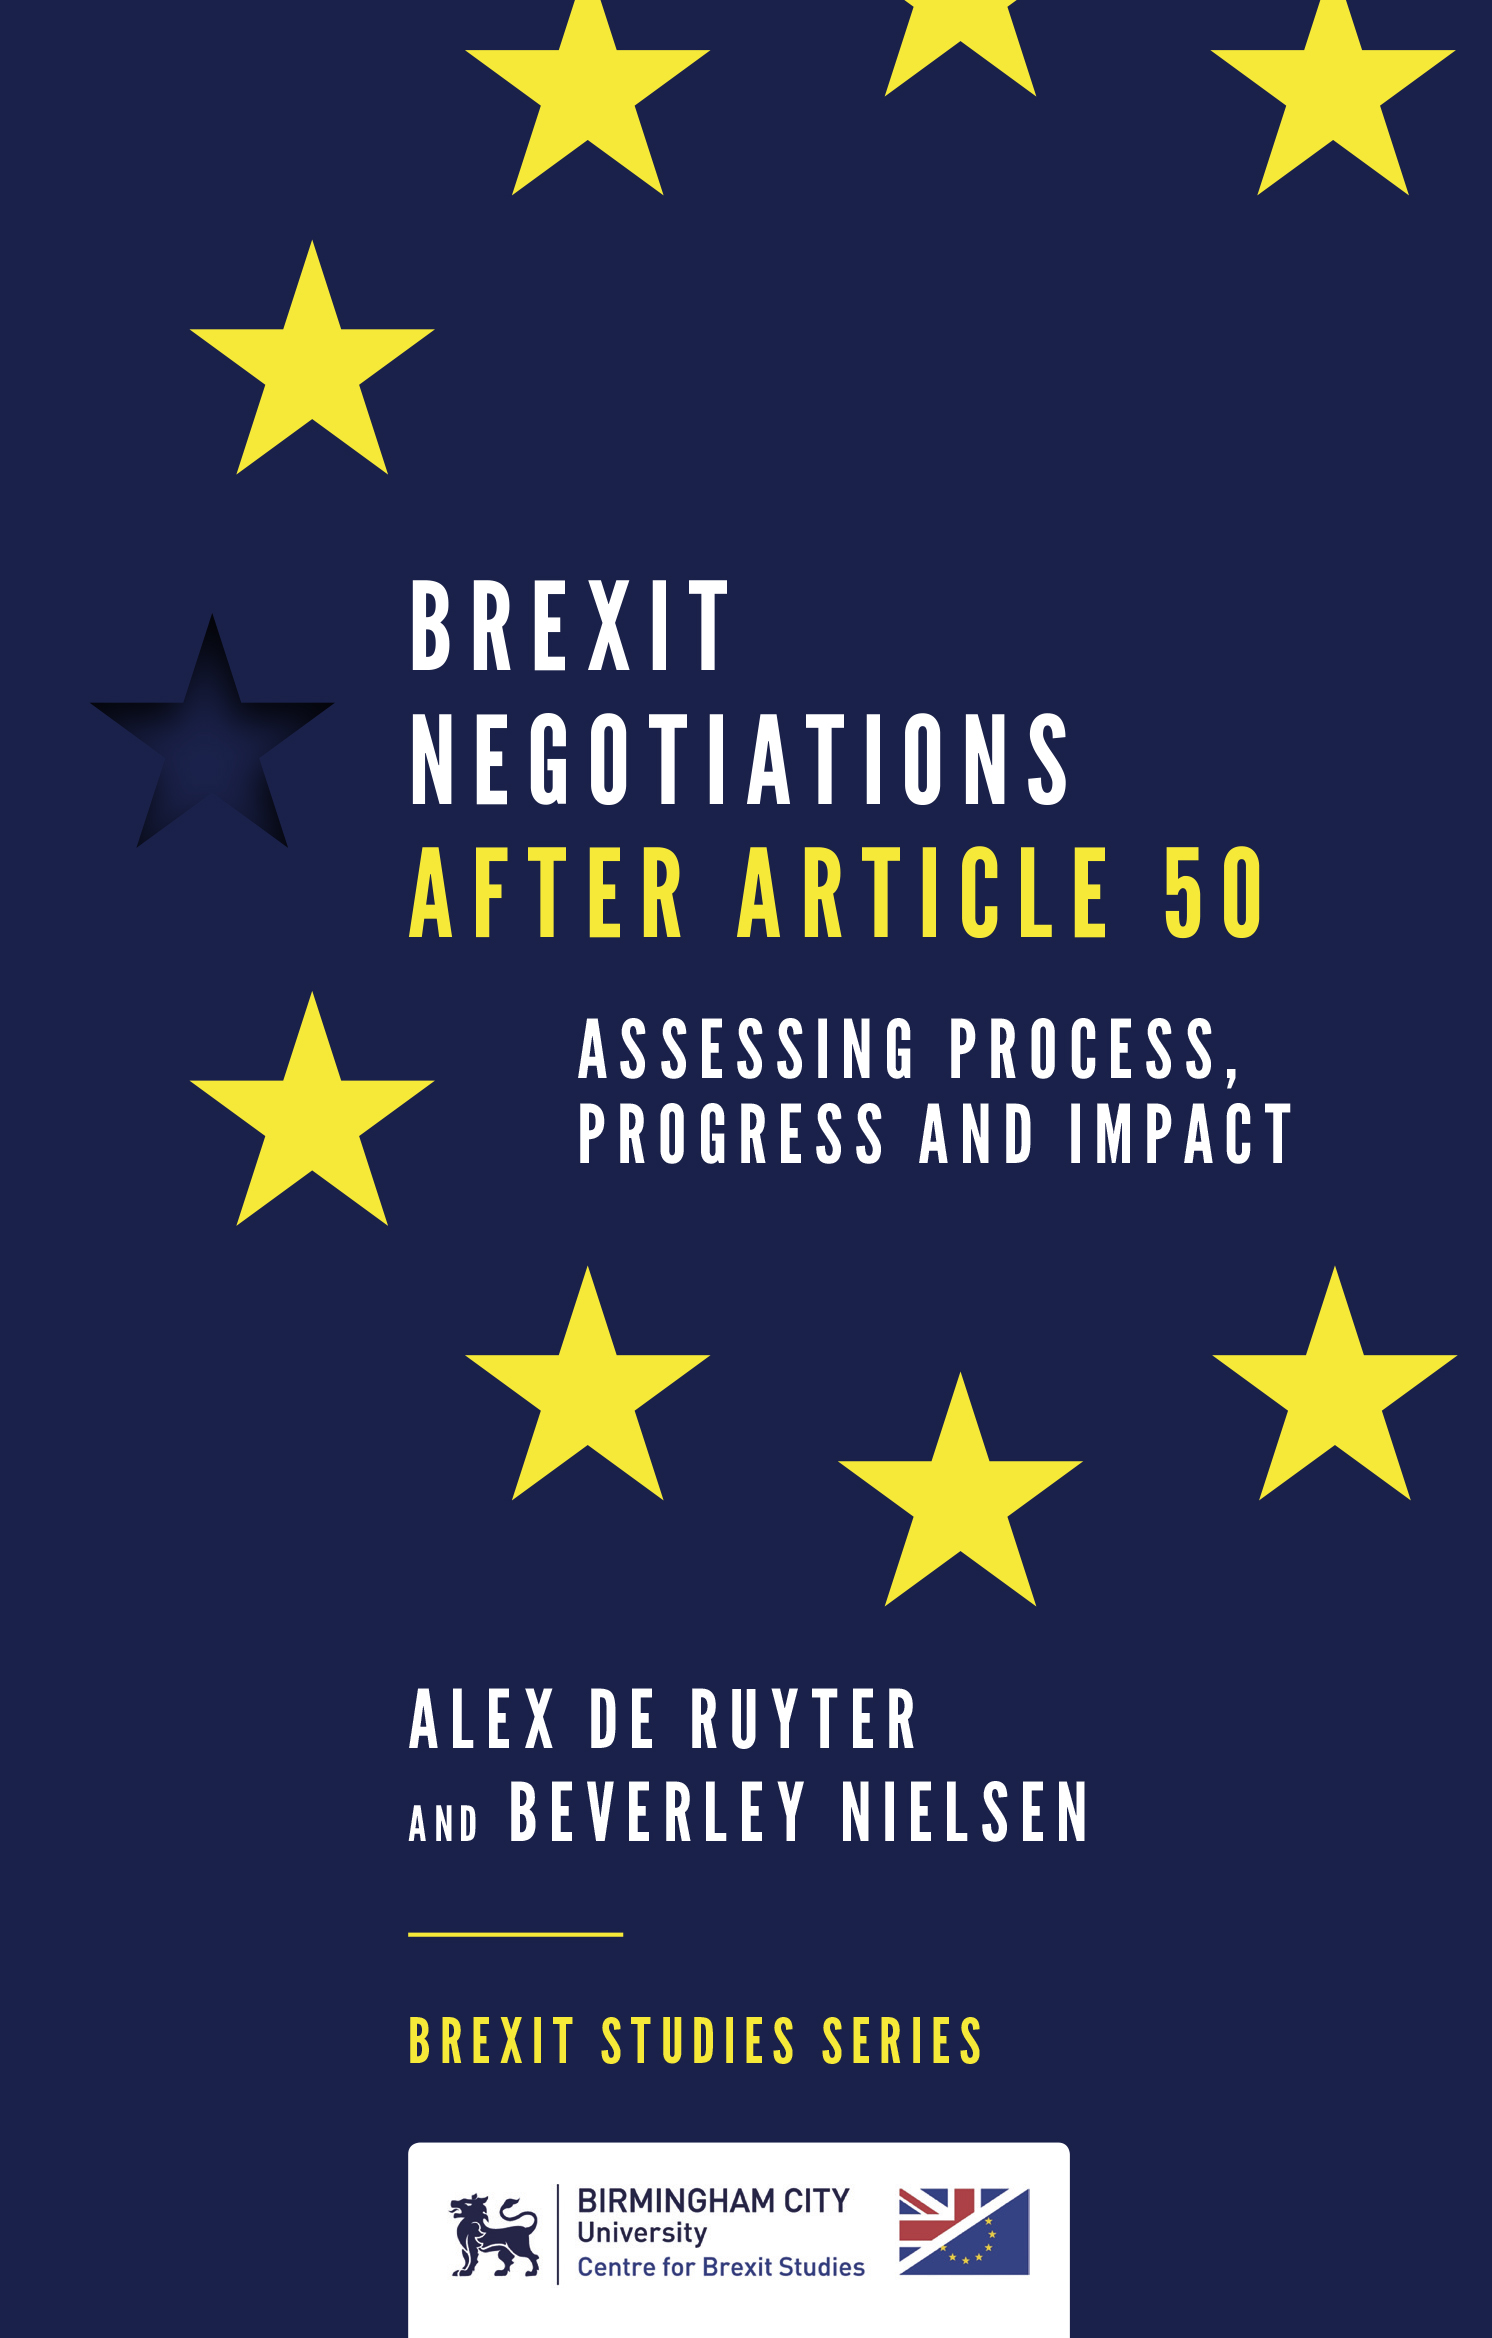 Brexit Negotiations After Article 50: Assessing Process, Progress and Impact